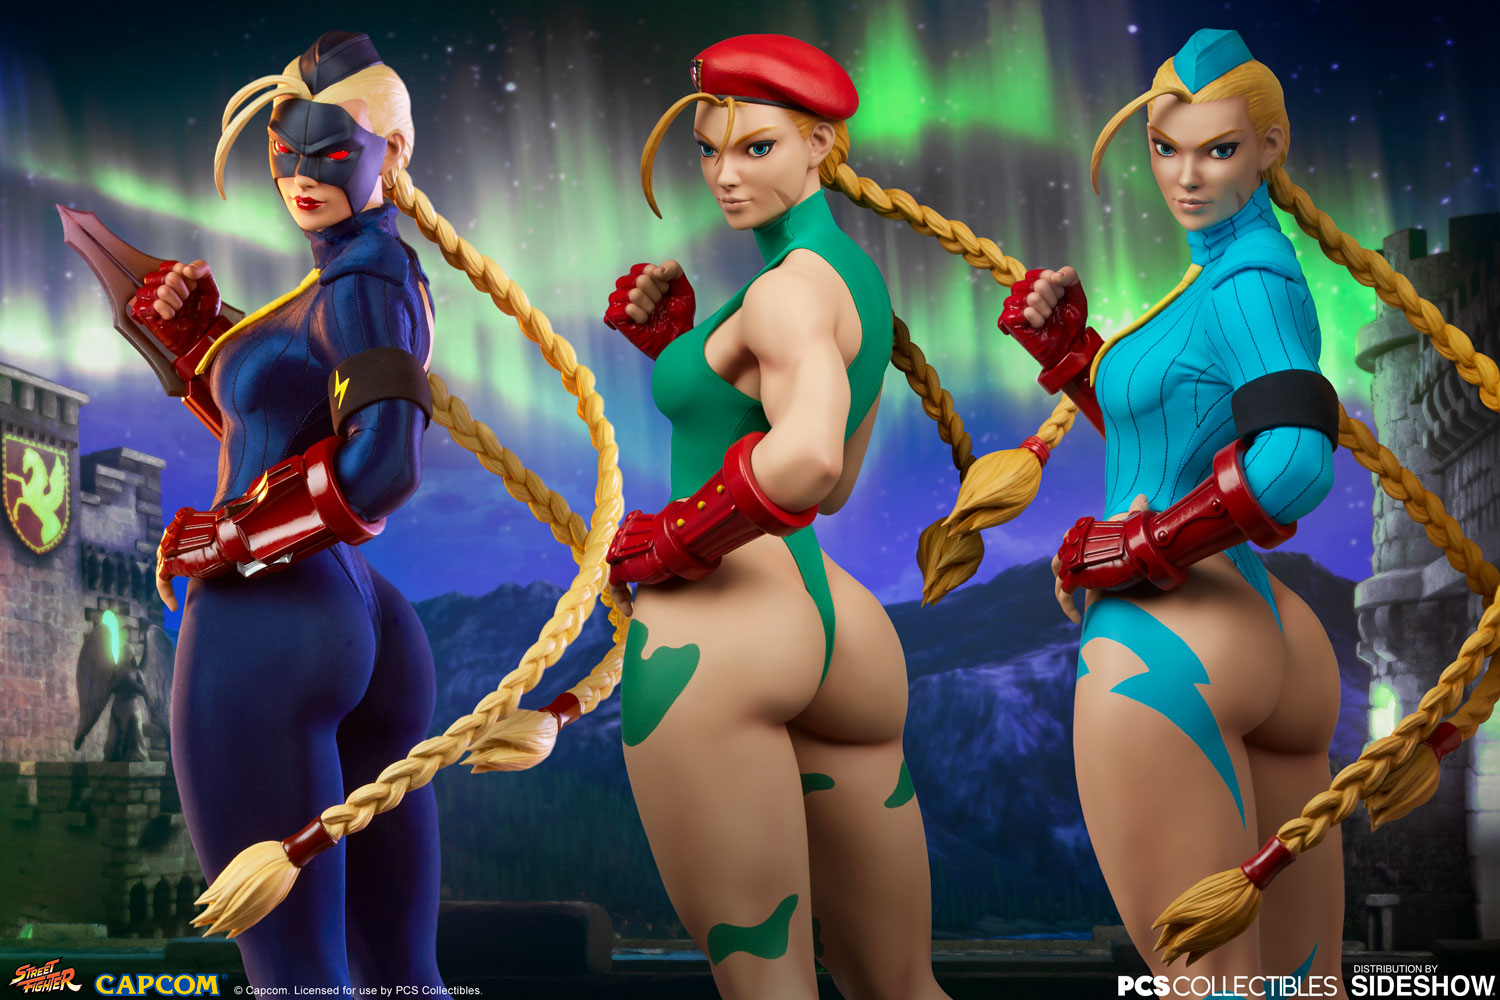 https://www.sideshow.com/wp/wp-content/uploads/2020/03/Cammy-Evolution-13-Scale-Statue-Set-Theater-1.jpg